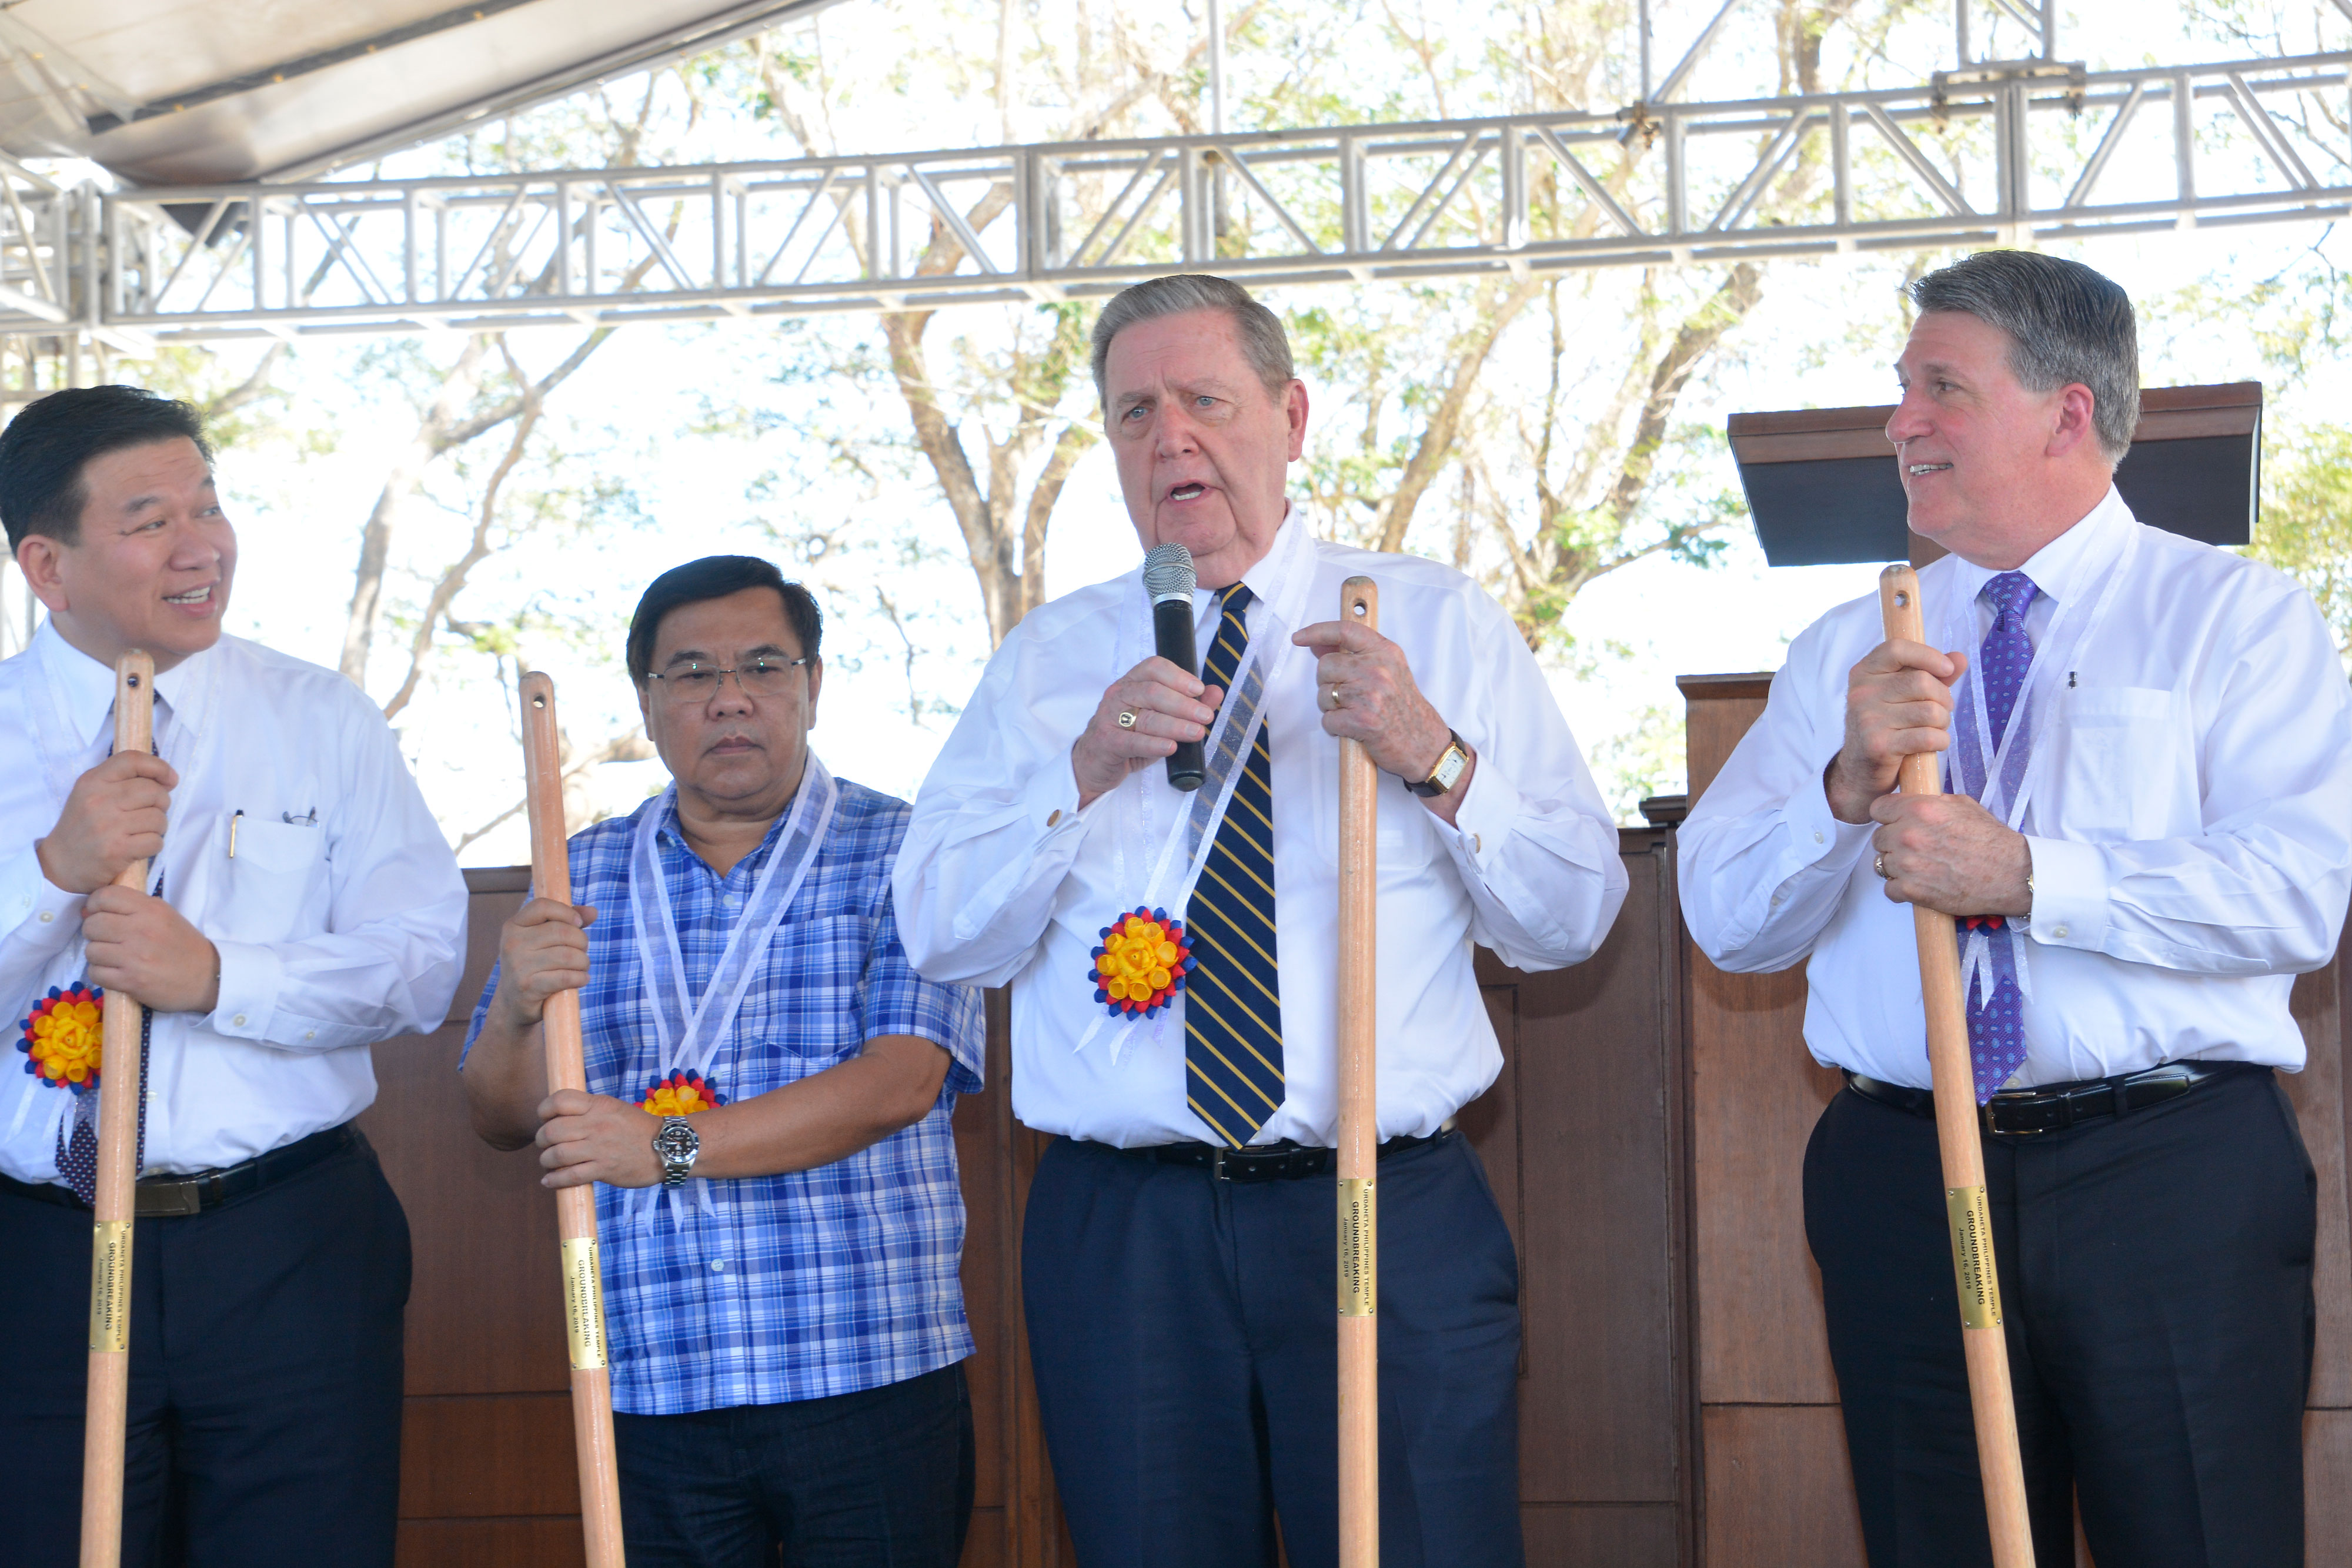 Elder Jeffrey R. Holland, center, of the Quorum of the Twelve Apostles, addresses community leaders and Church membersa in Urdaneta, Pangasinan, Philippines, on Wednesday Jan. 16, 2019. He broke ground for the new temple, the Church's third in the Philippines.